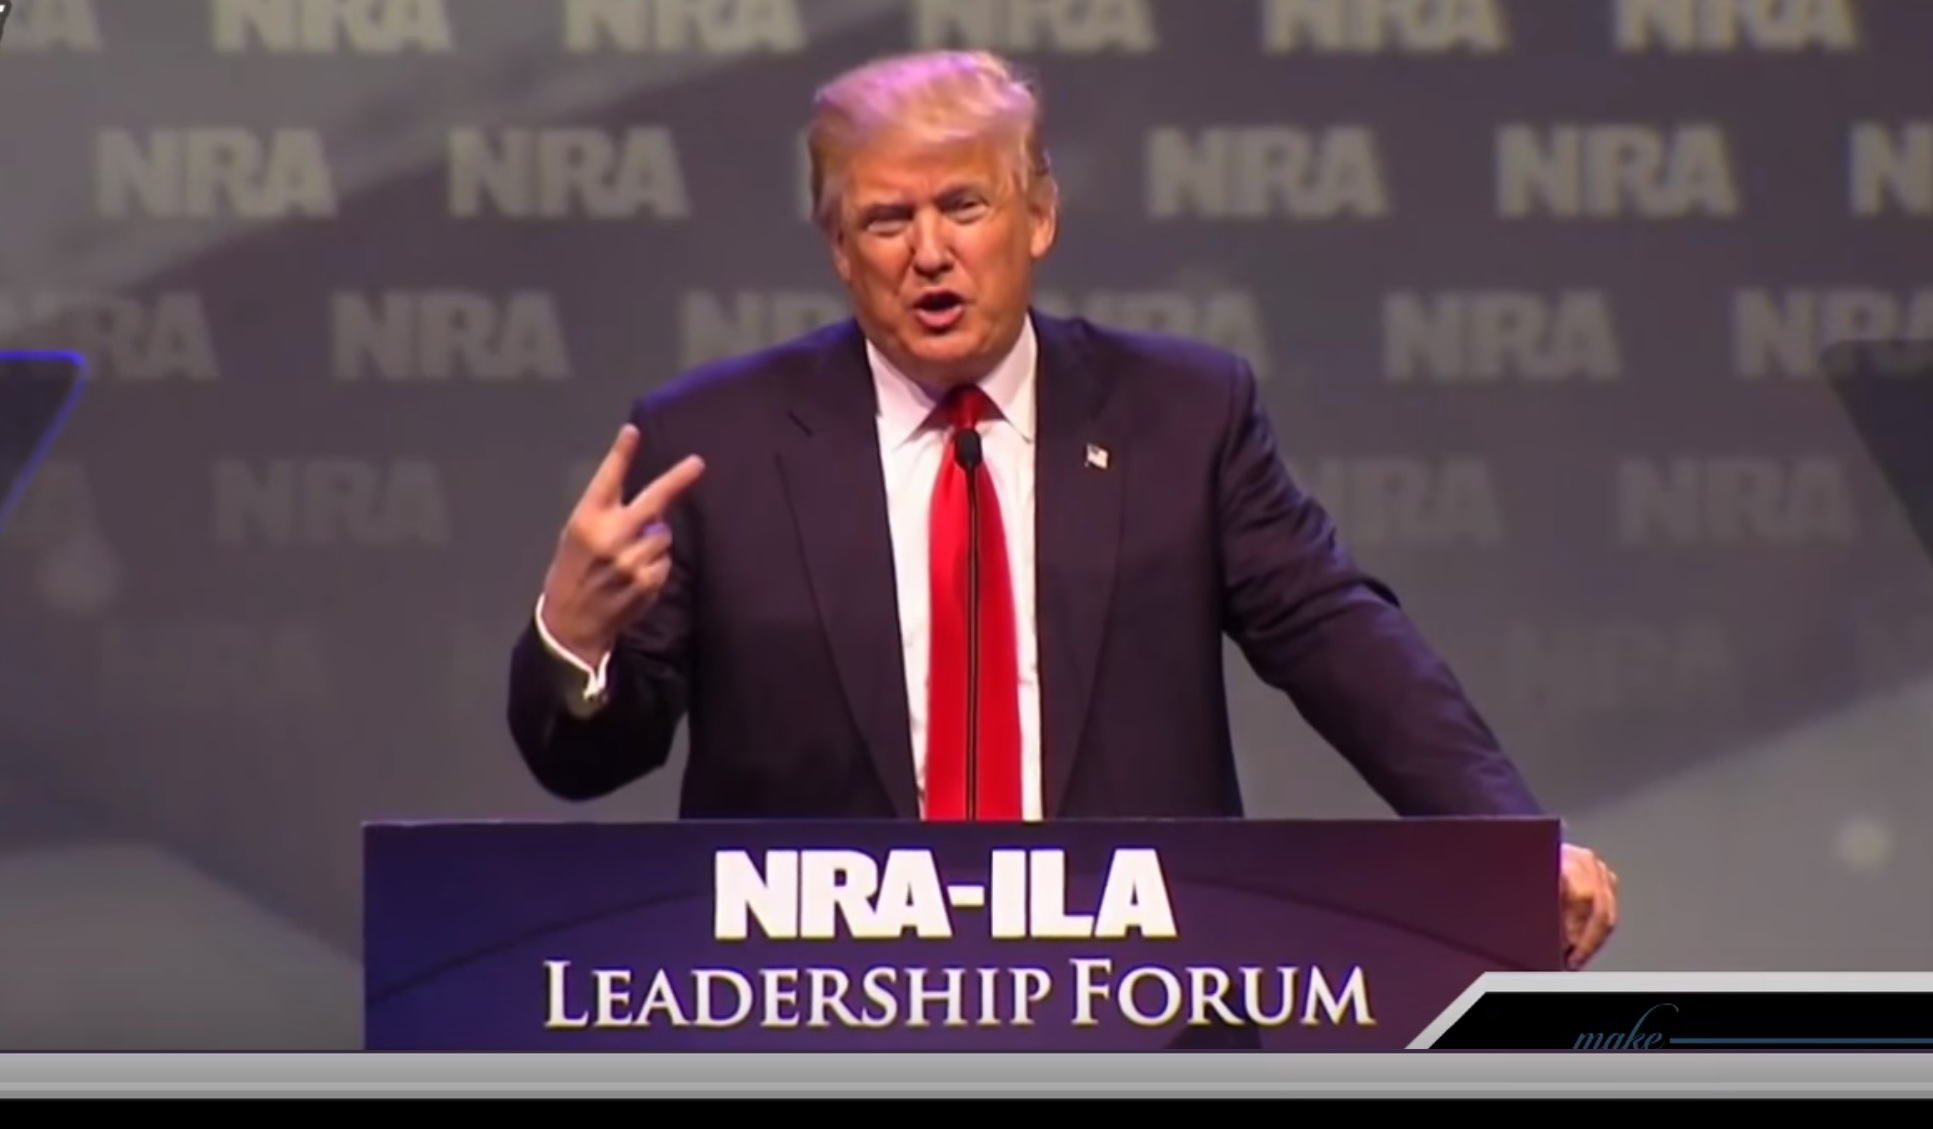 Senate Intel Committee: We Have Evidence Showing The 'Kremlin Used' NRA To Help Trump In 2016